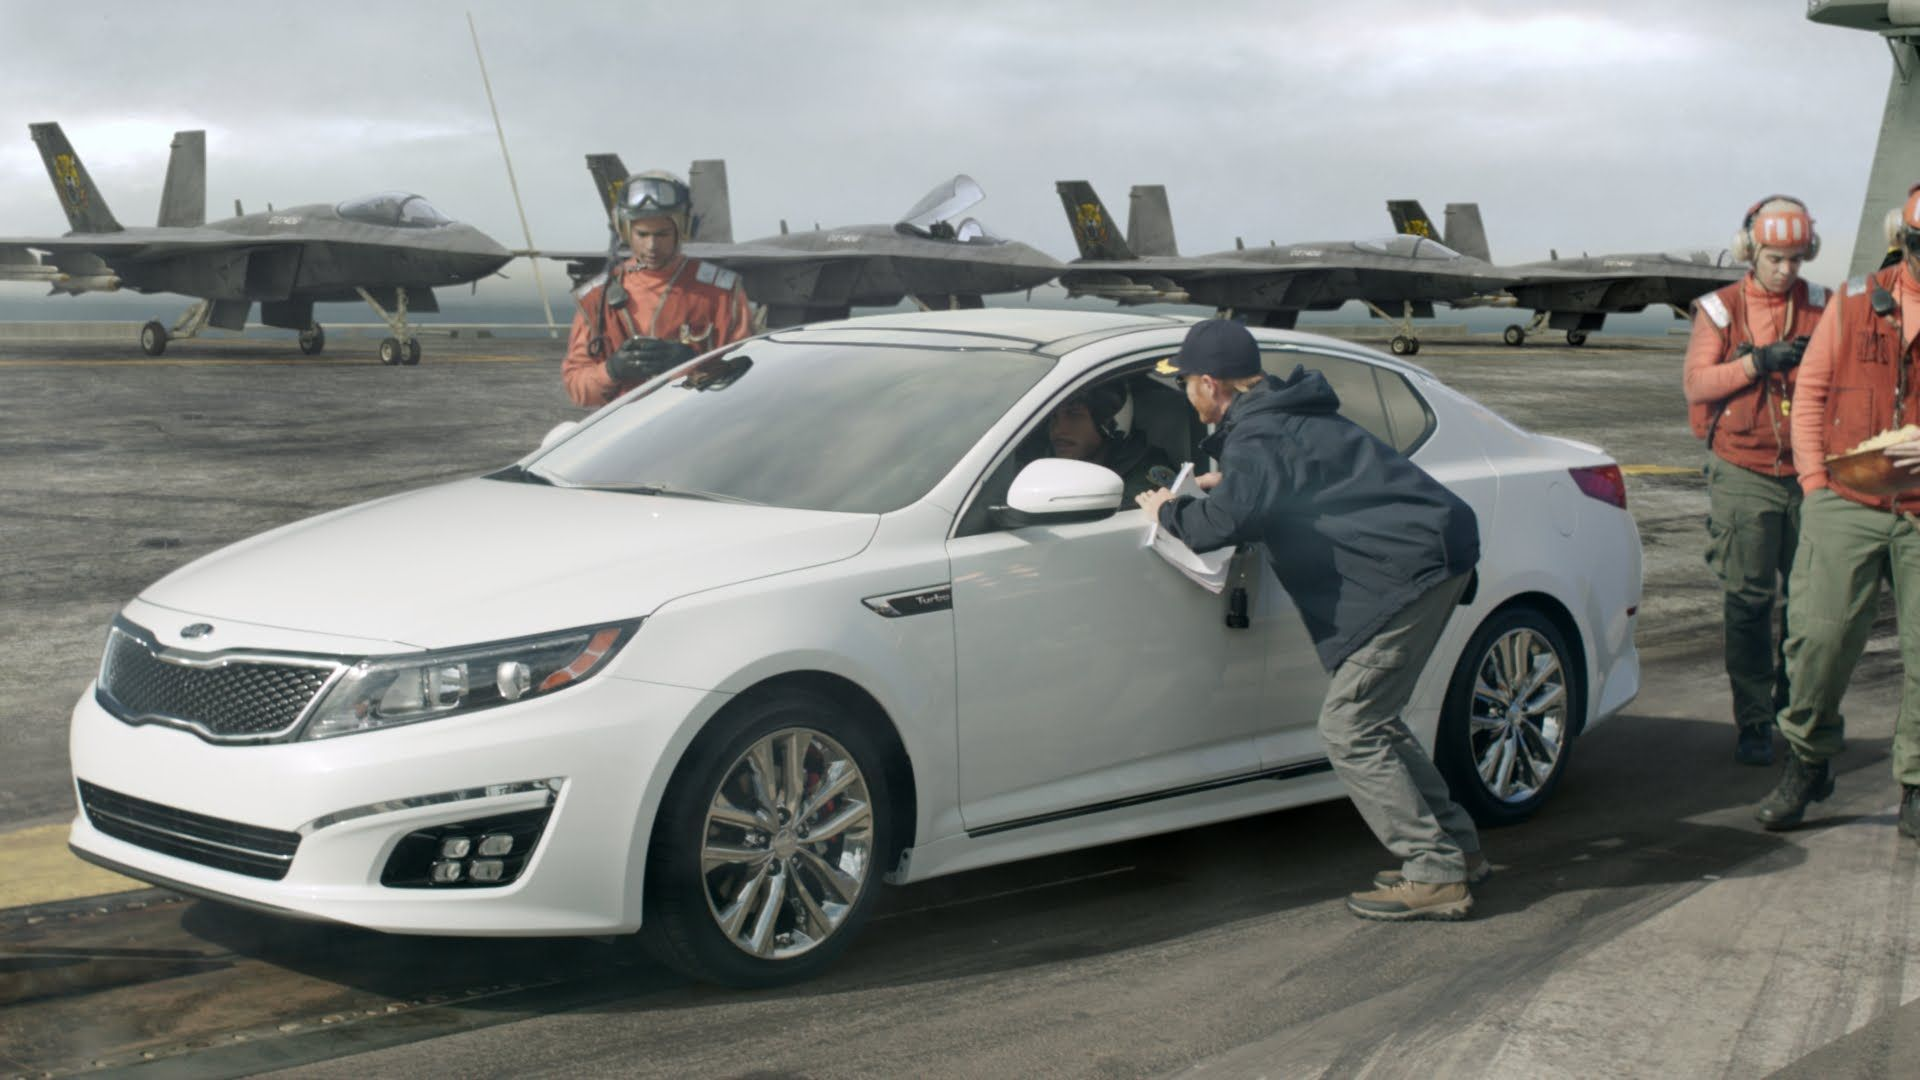 With a turbo engine, the Kia Optima flies, and fighter pilot Blake Griffin knows it. In his high-tech cockpit, it's time for Blake to destroy the enemy using the element of surprise. Over.  Prepare for take-off with the 2015 Kia Optima's power folding mirrors. It's not your average mid-size sedan.